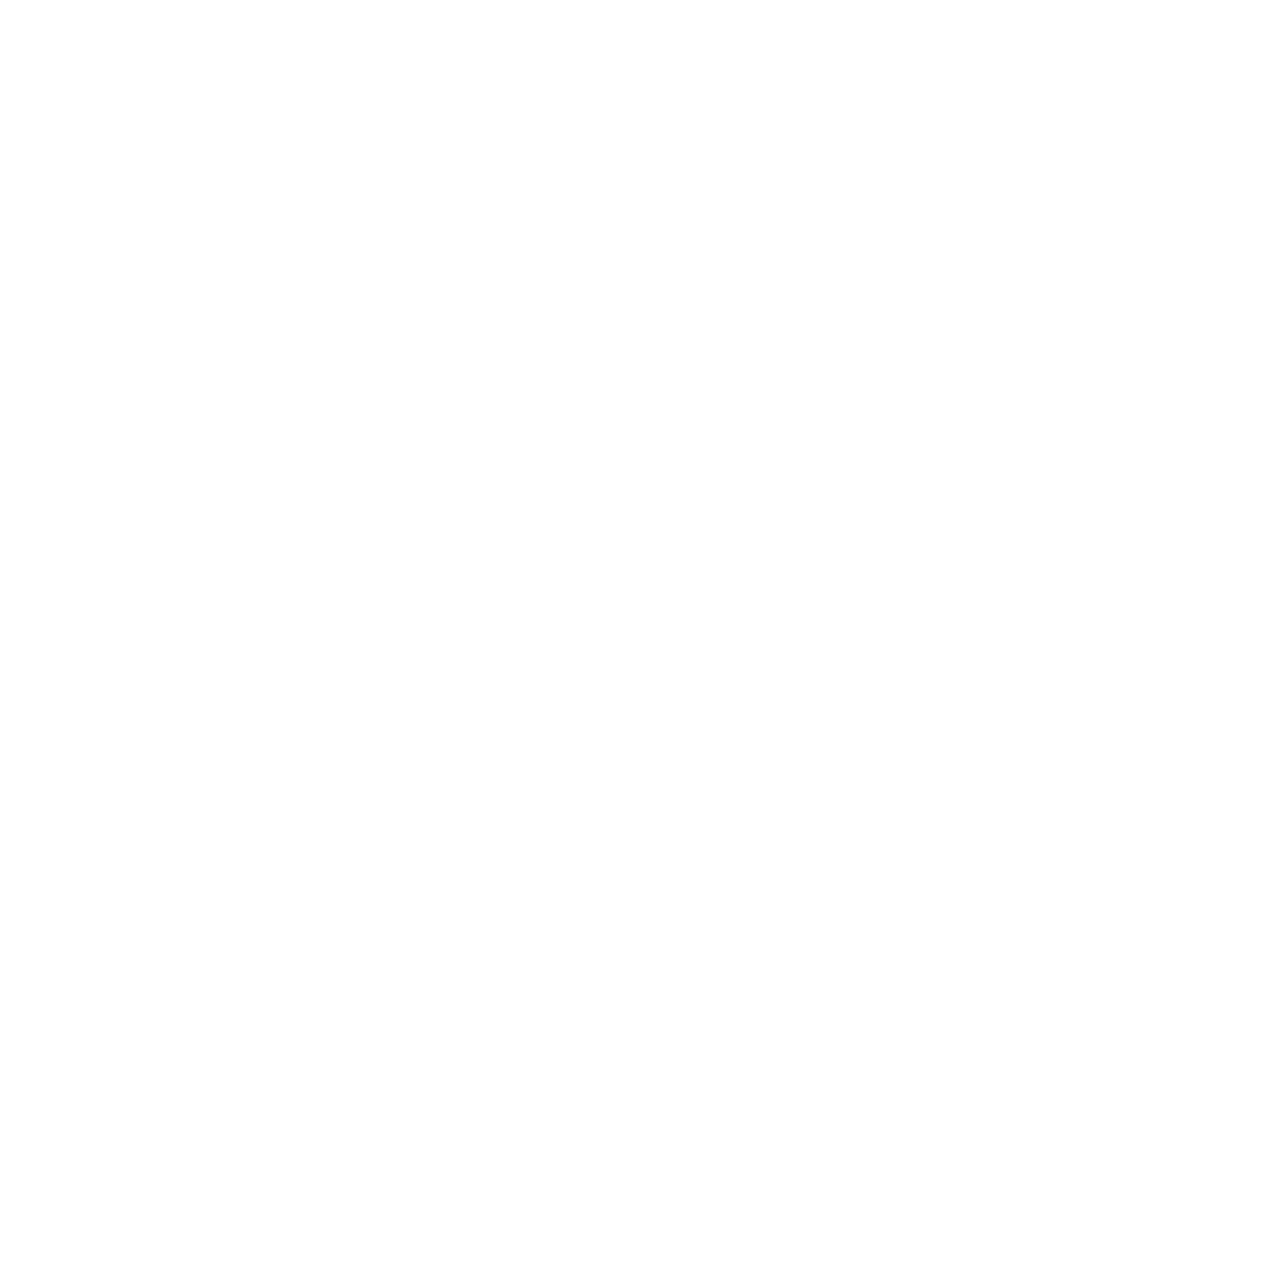 The BT Group